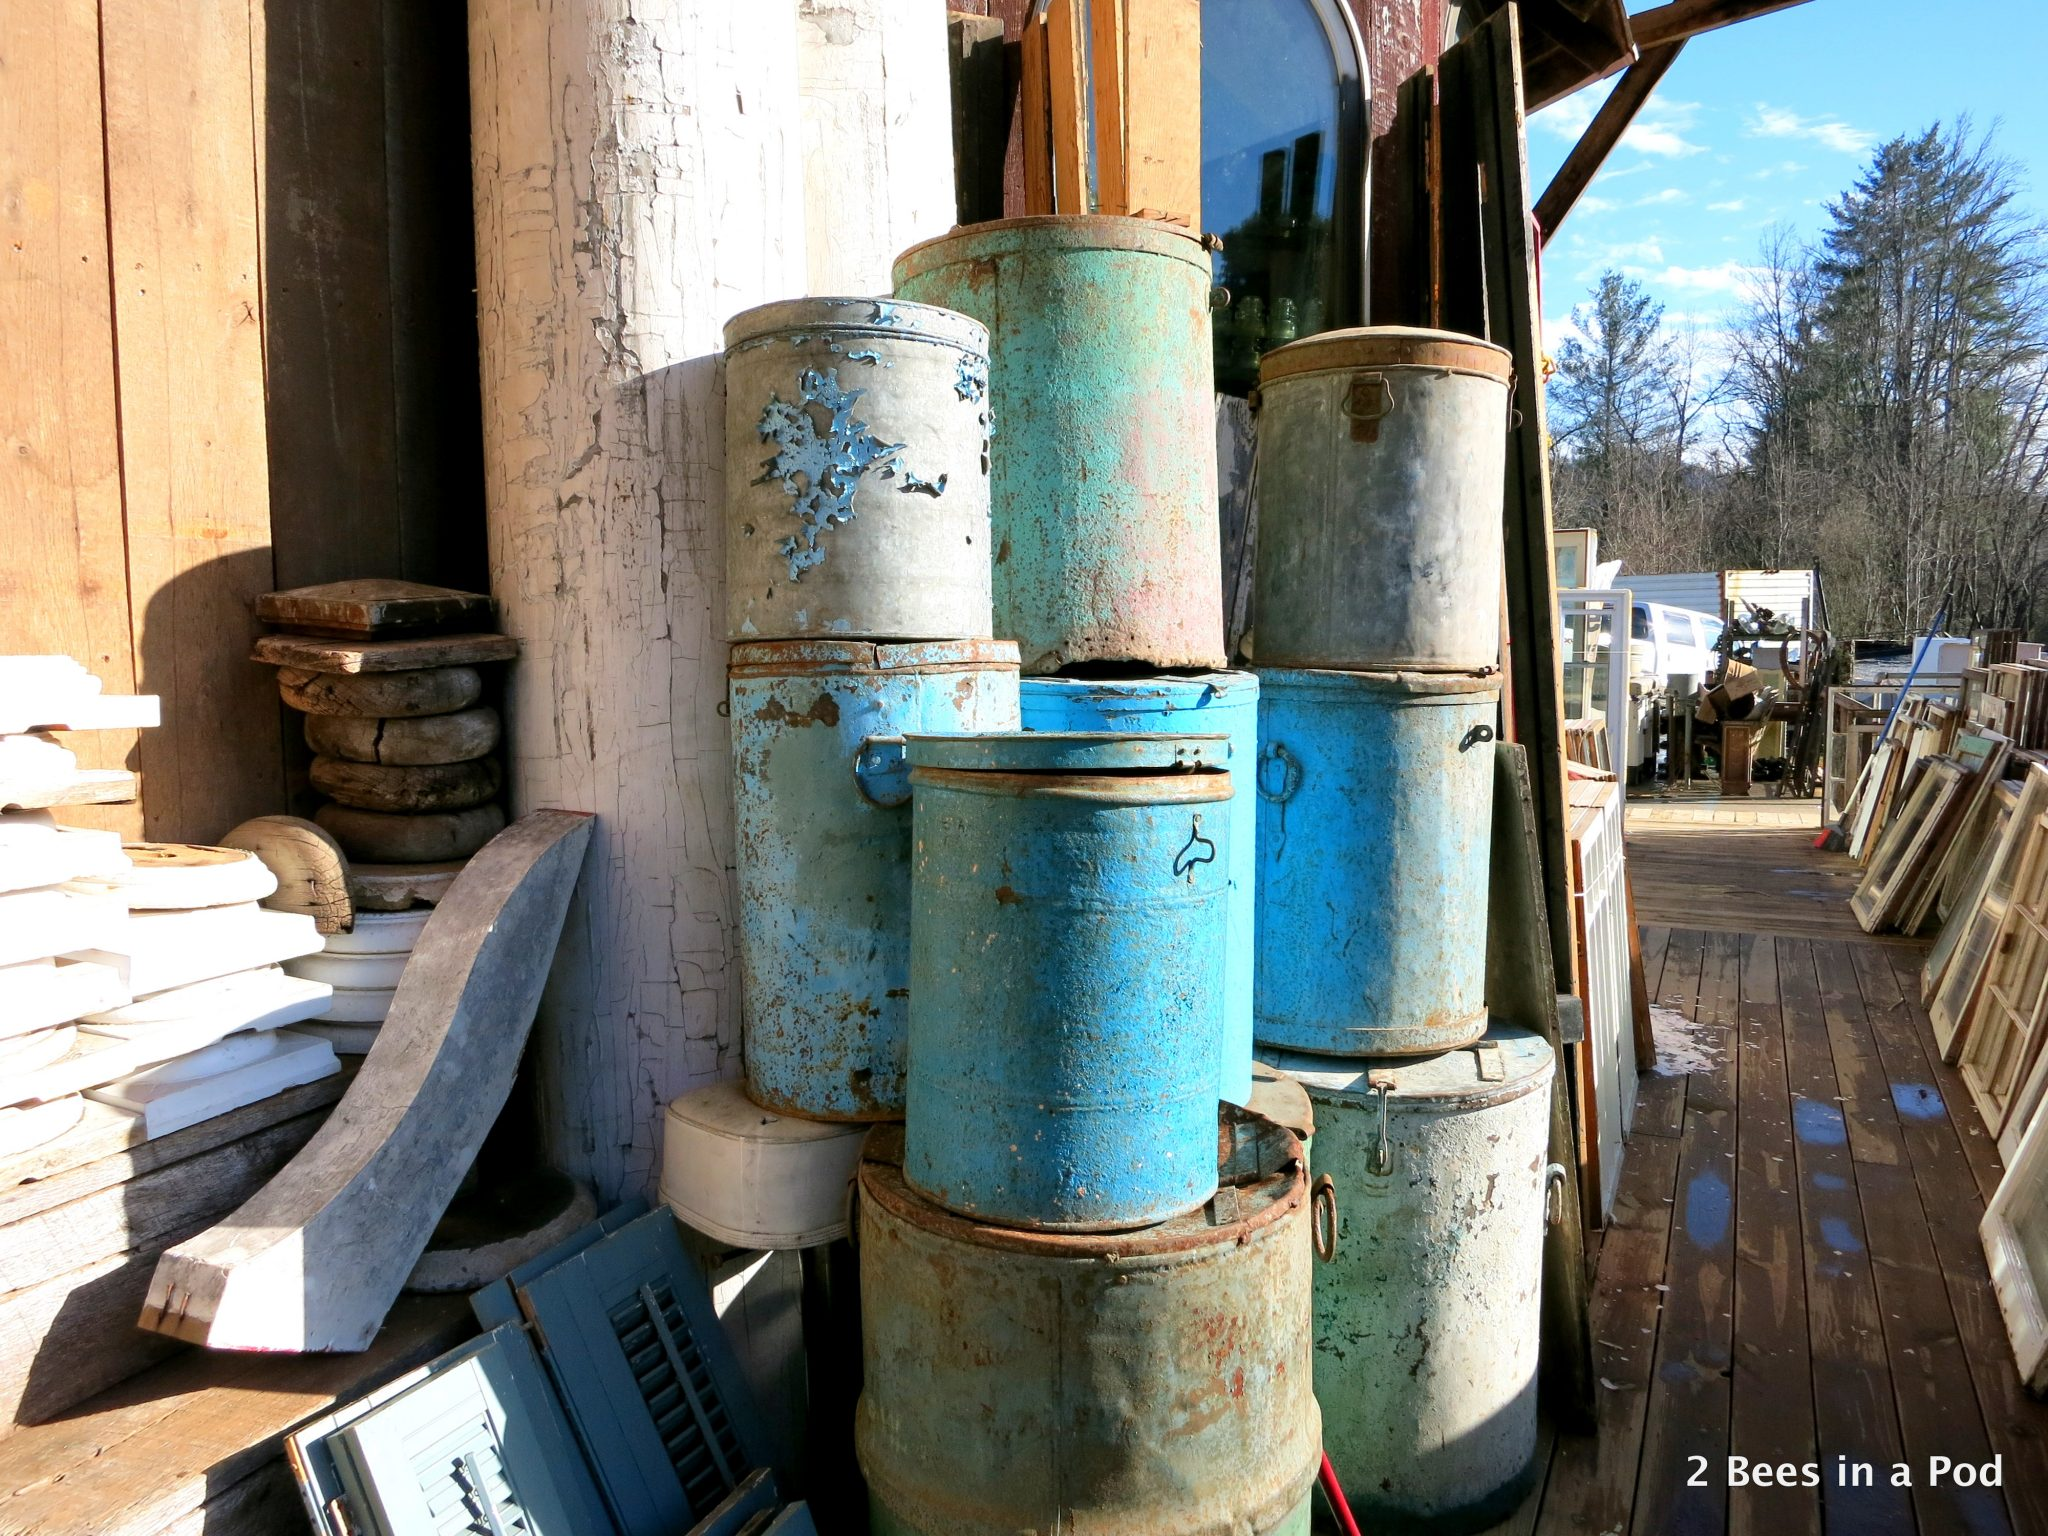 Culpepper's Otto Depot in Otto, NC - architectural salvage. Love the teals and blues in these barrels